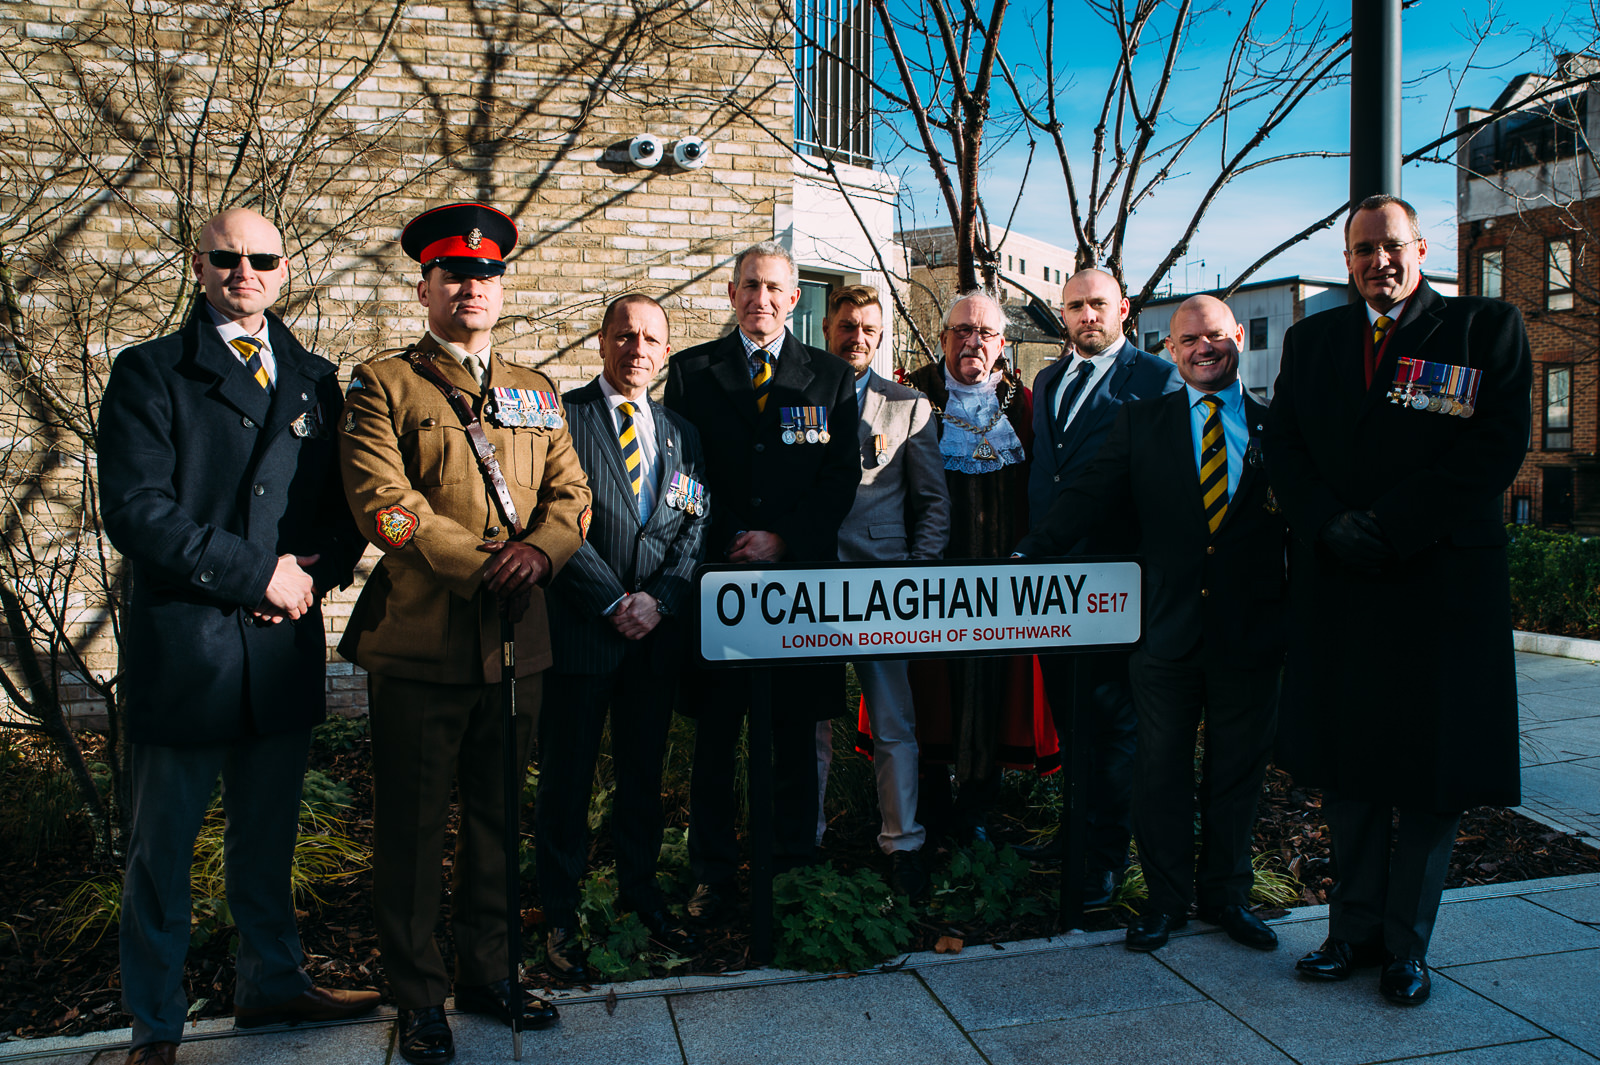 OPENING OF O'CALLAGHAN WAY